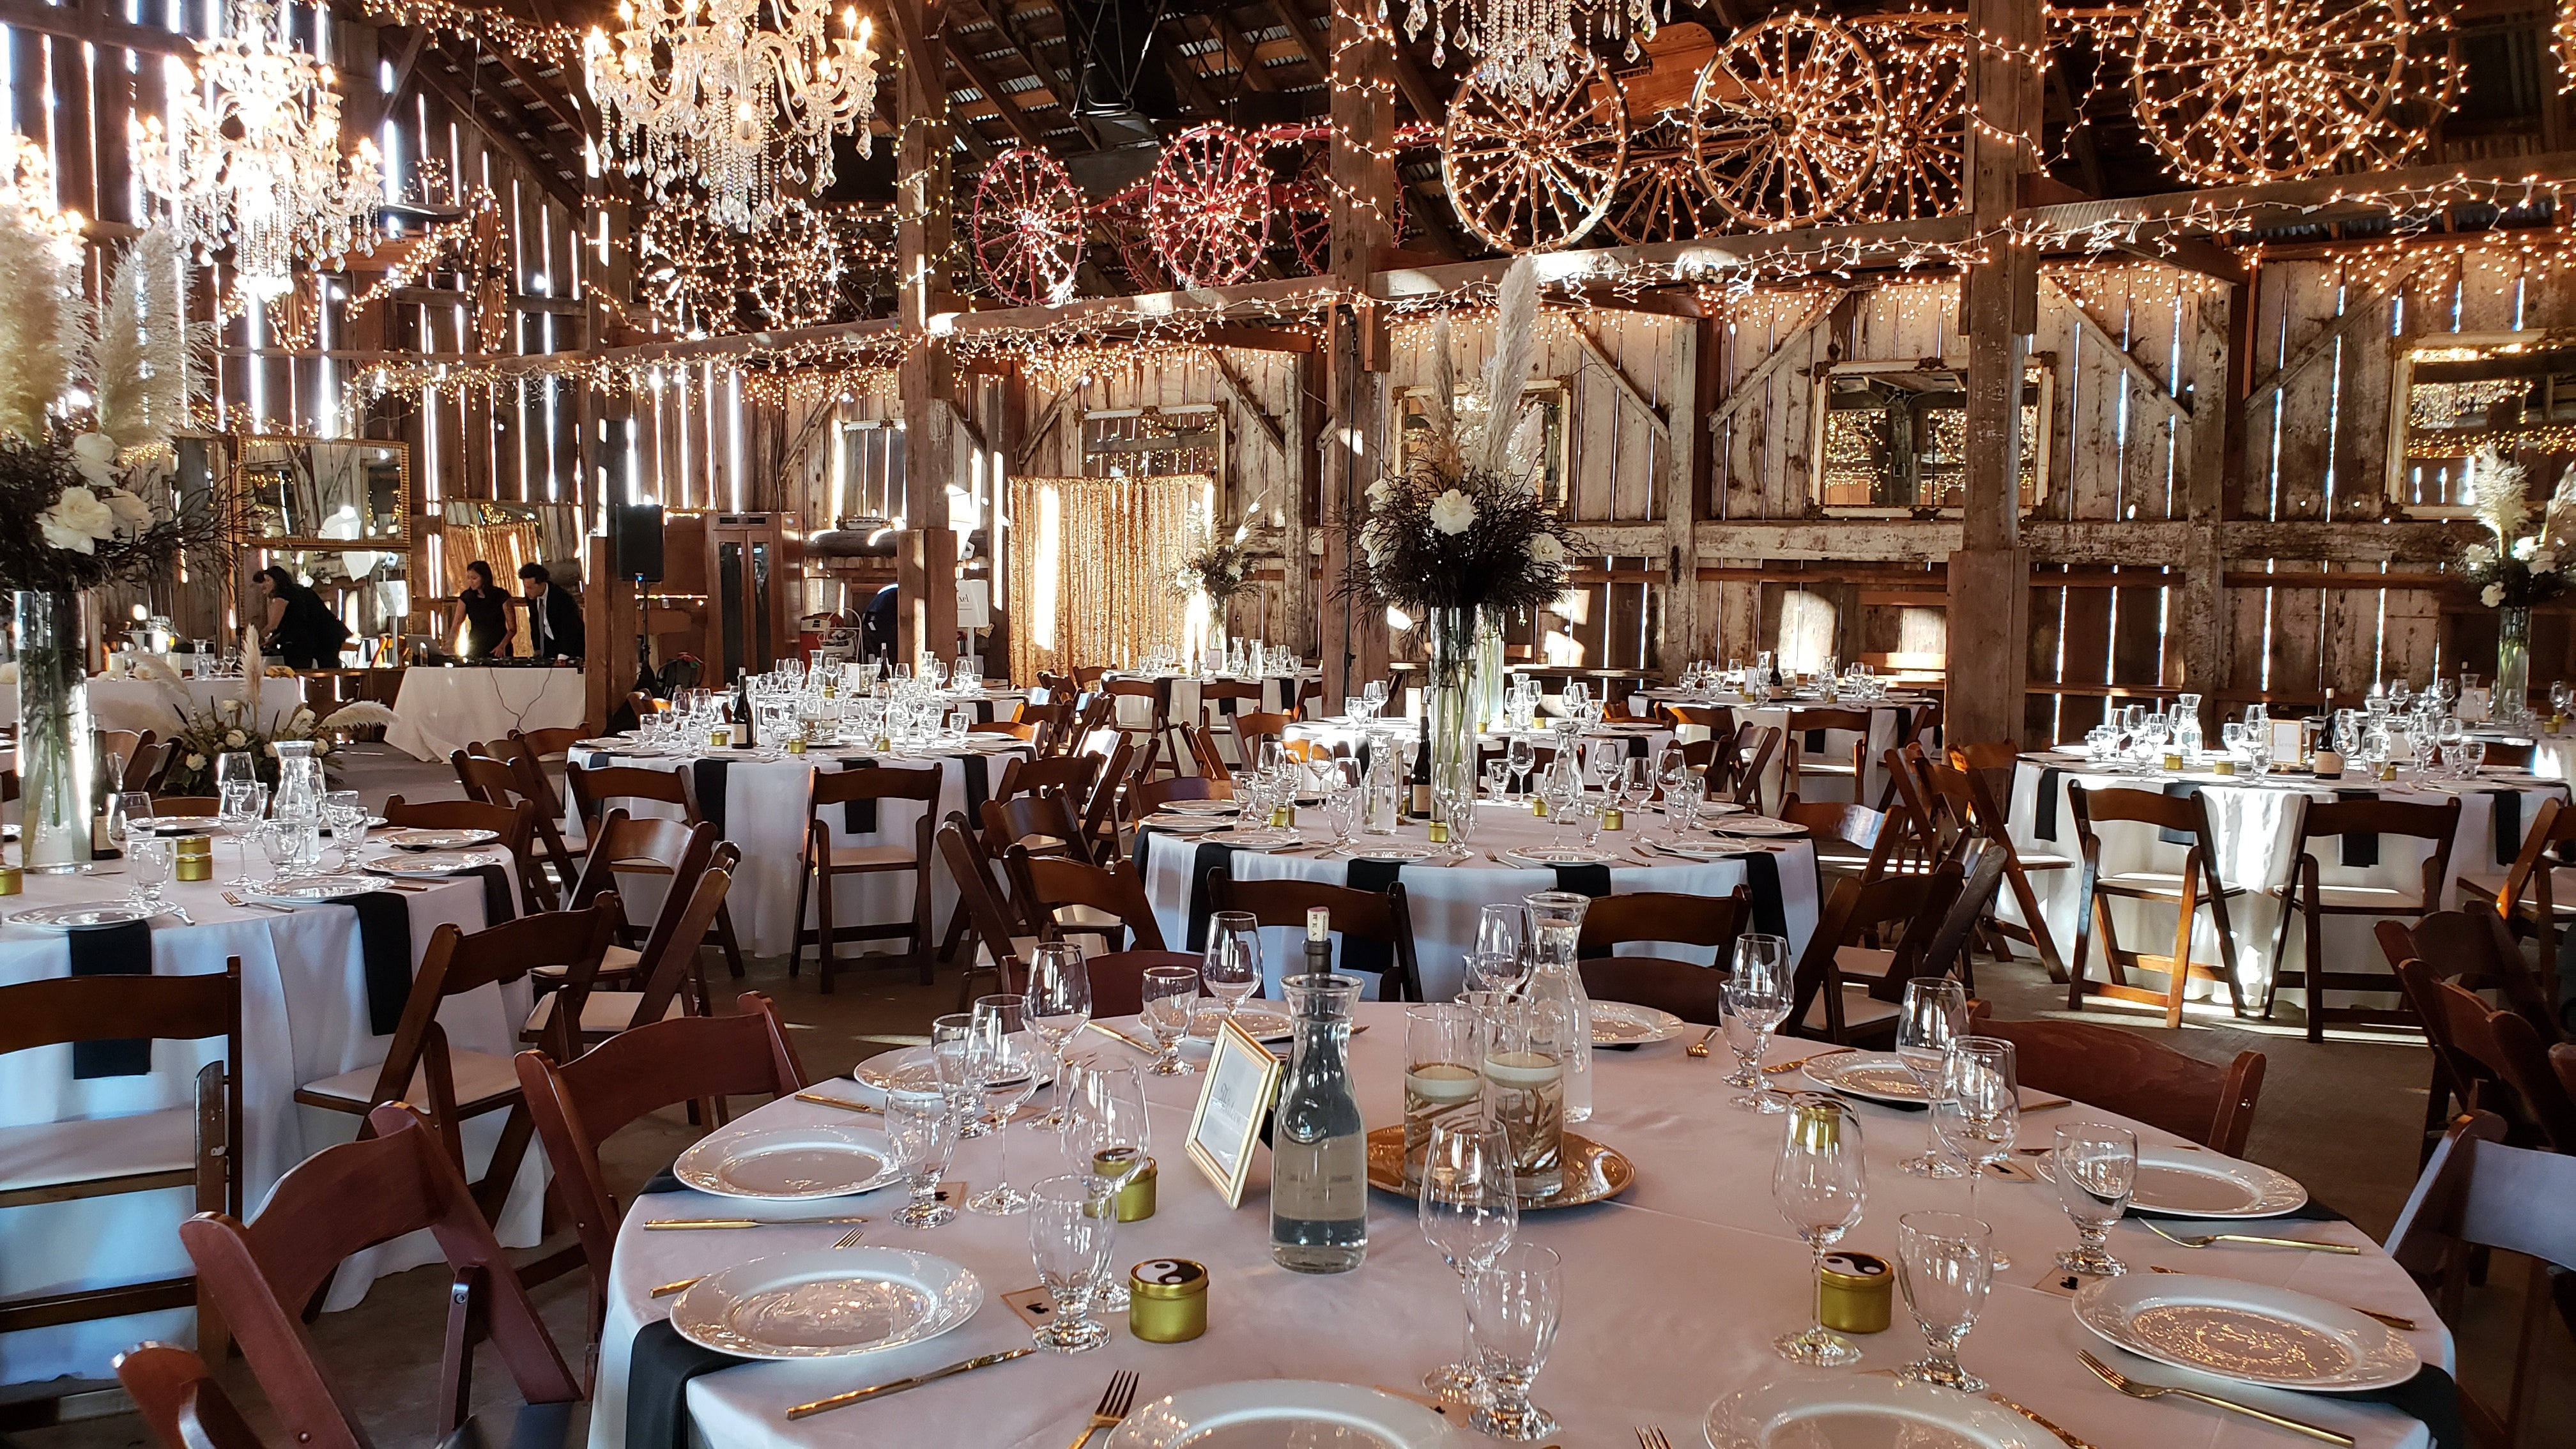 Party Tents u0026 Events | Party Equipment Rental | Santa Rosa CA u2013 Party Tents u0026 Events | Santa Rosa CA Event Equipment Rentals & Party Tents u0026 Events | Party Equipment Rental | Santa Rosa CA ...